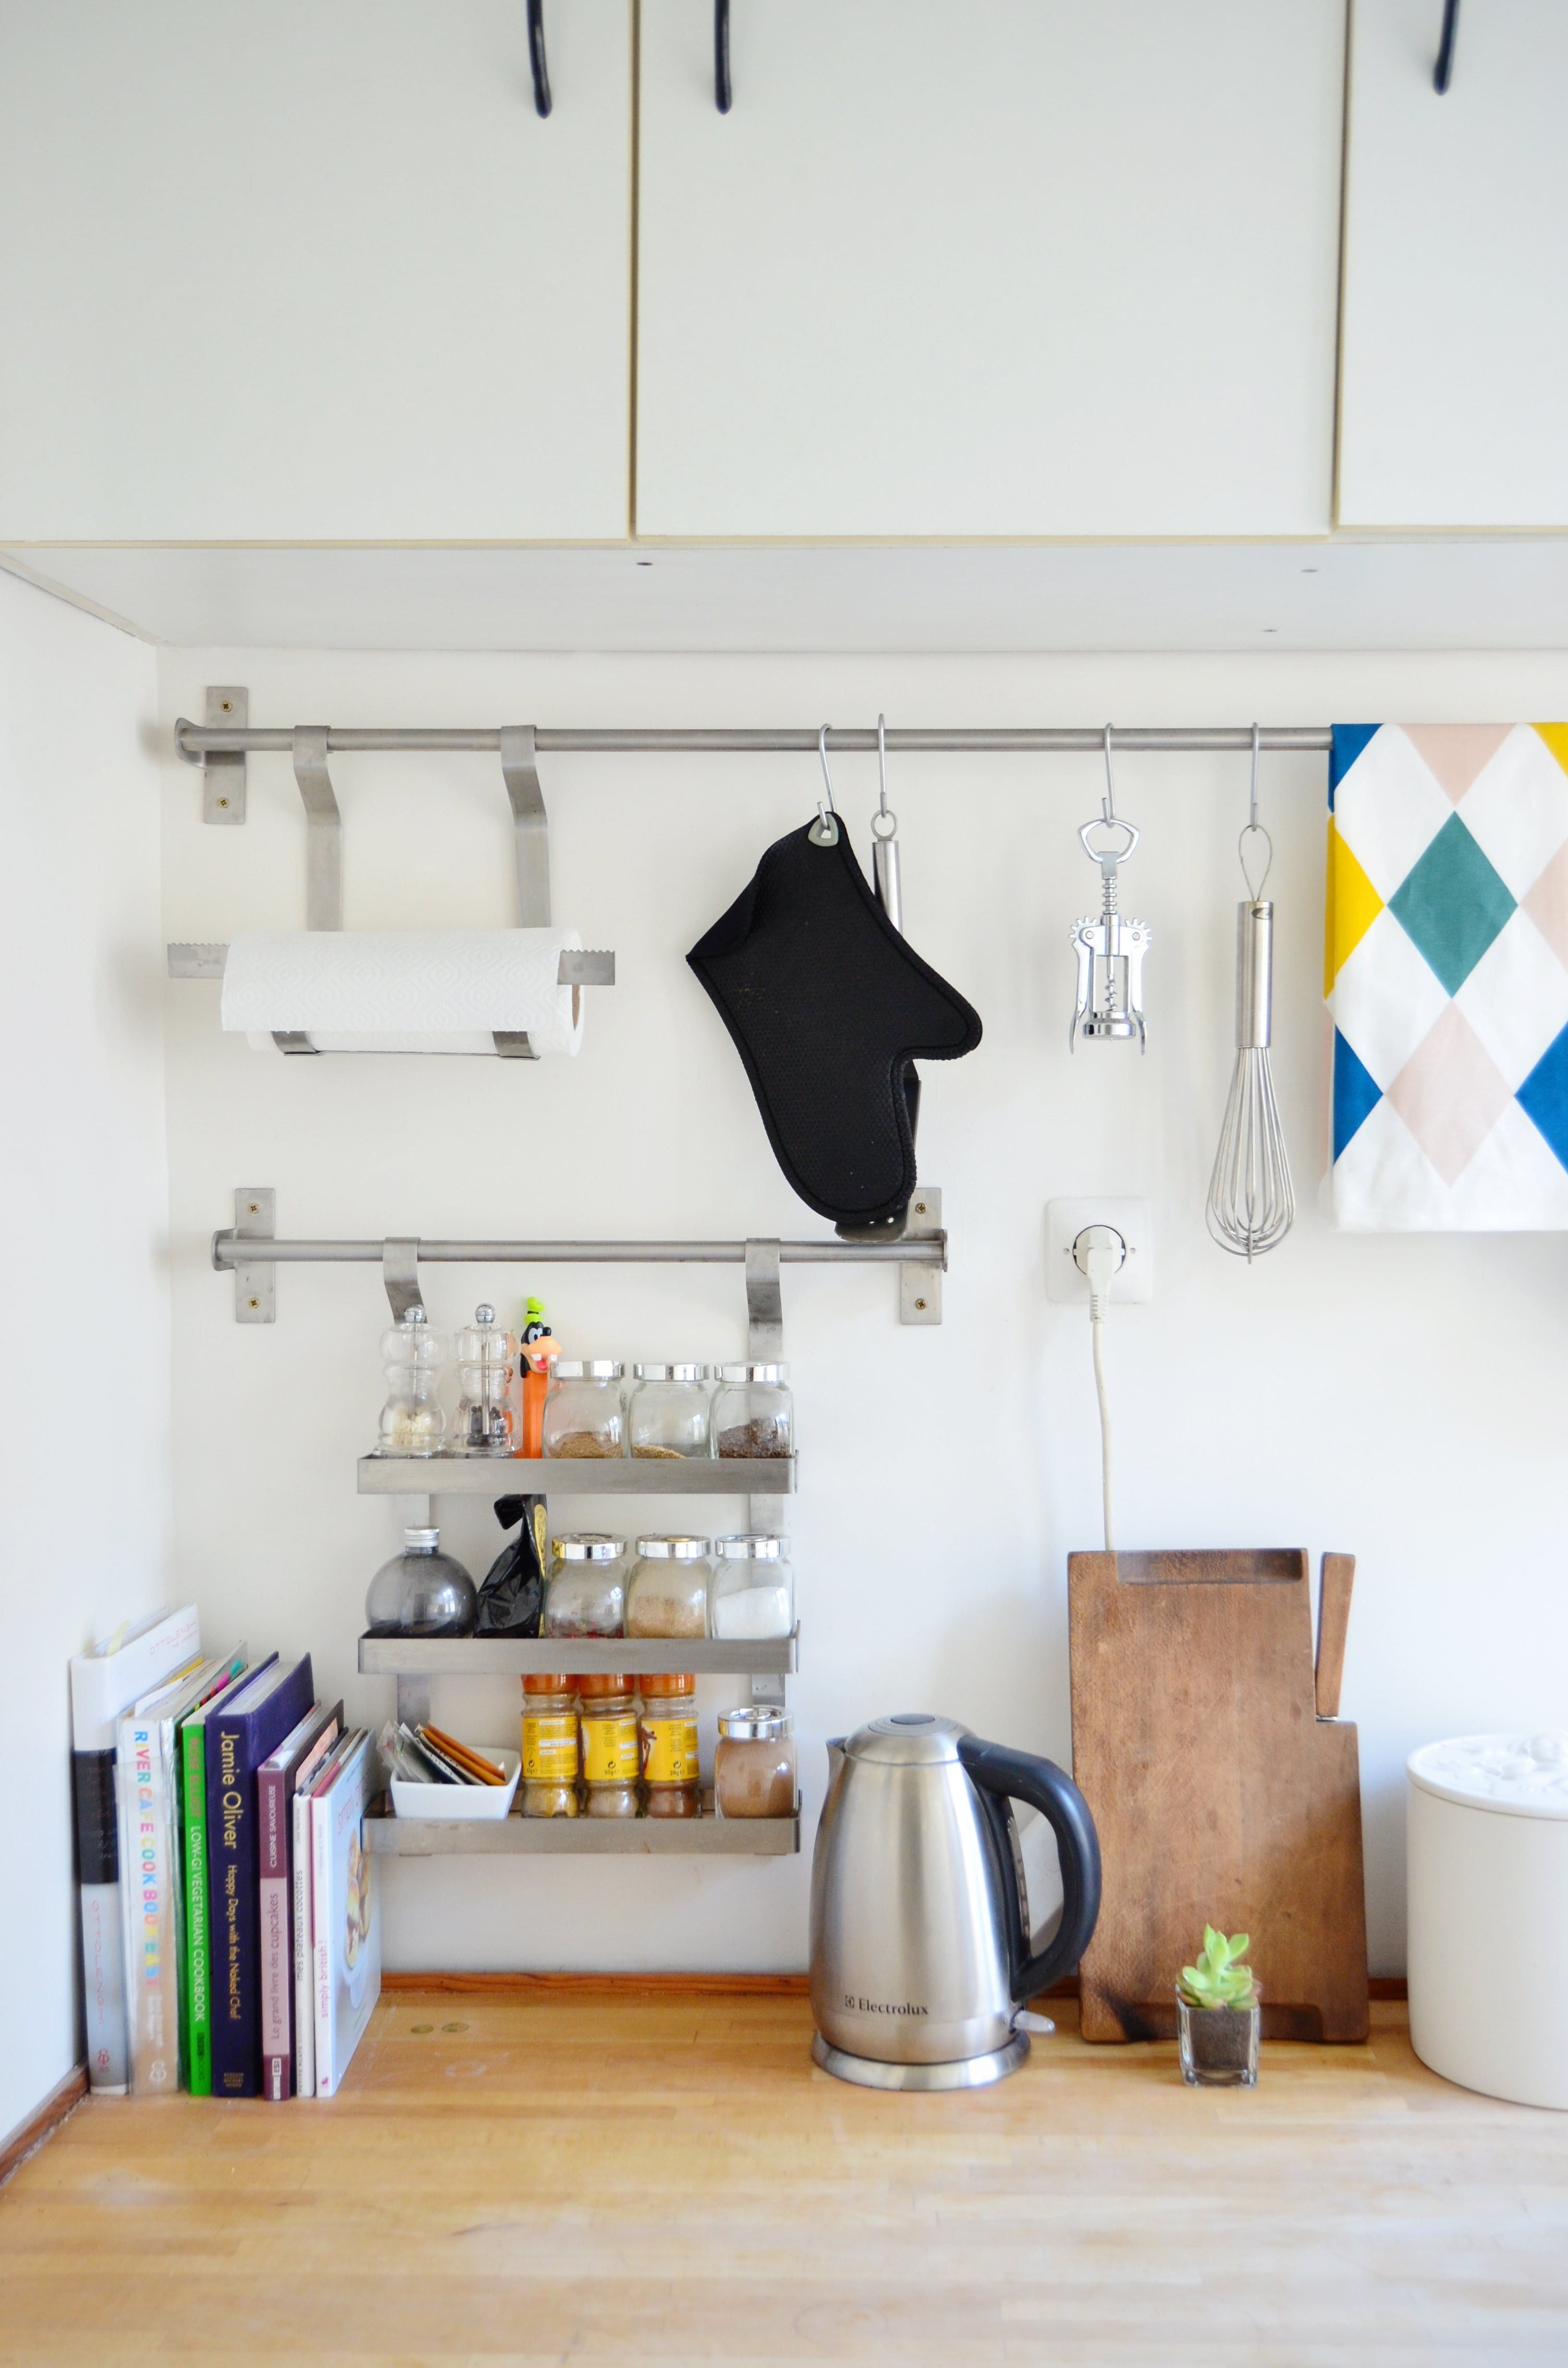 The Best Ikea Products For Small Spaces Small Kitchen Storage Solutions Small Kitchen Storage Ikea Small Spaces